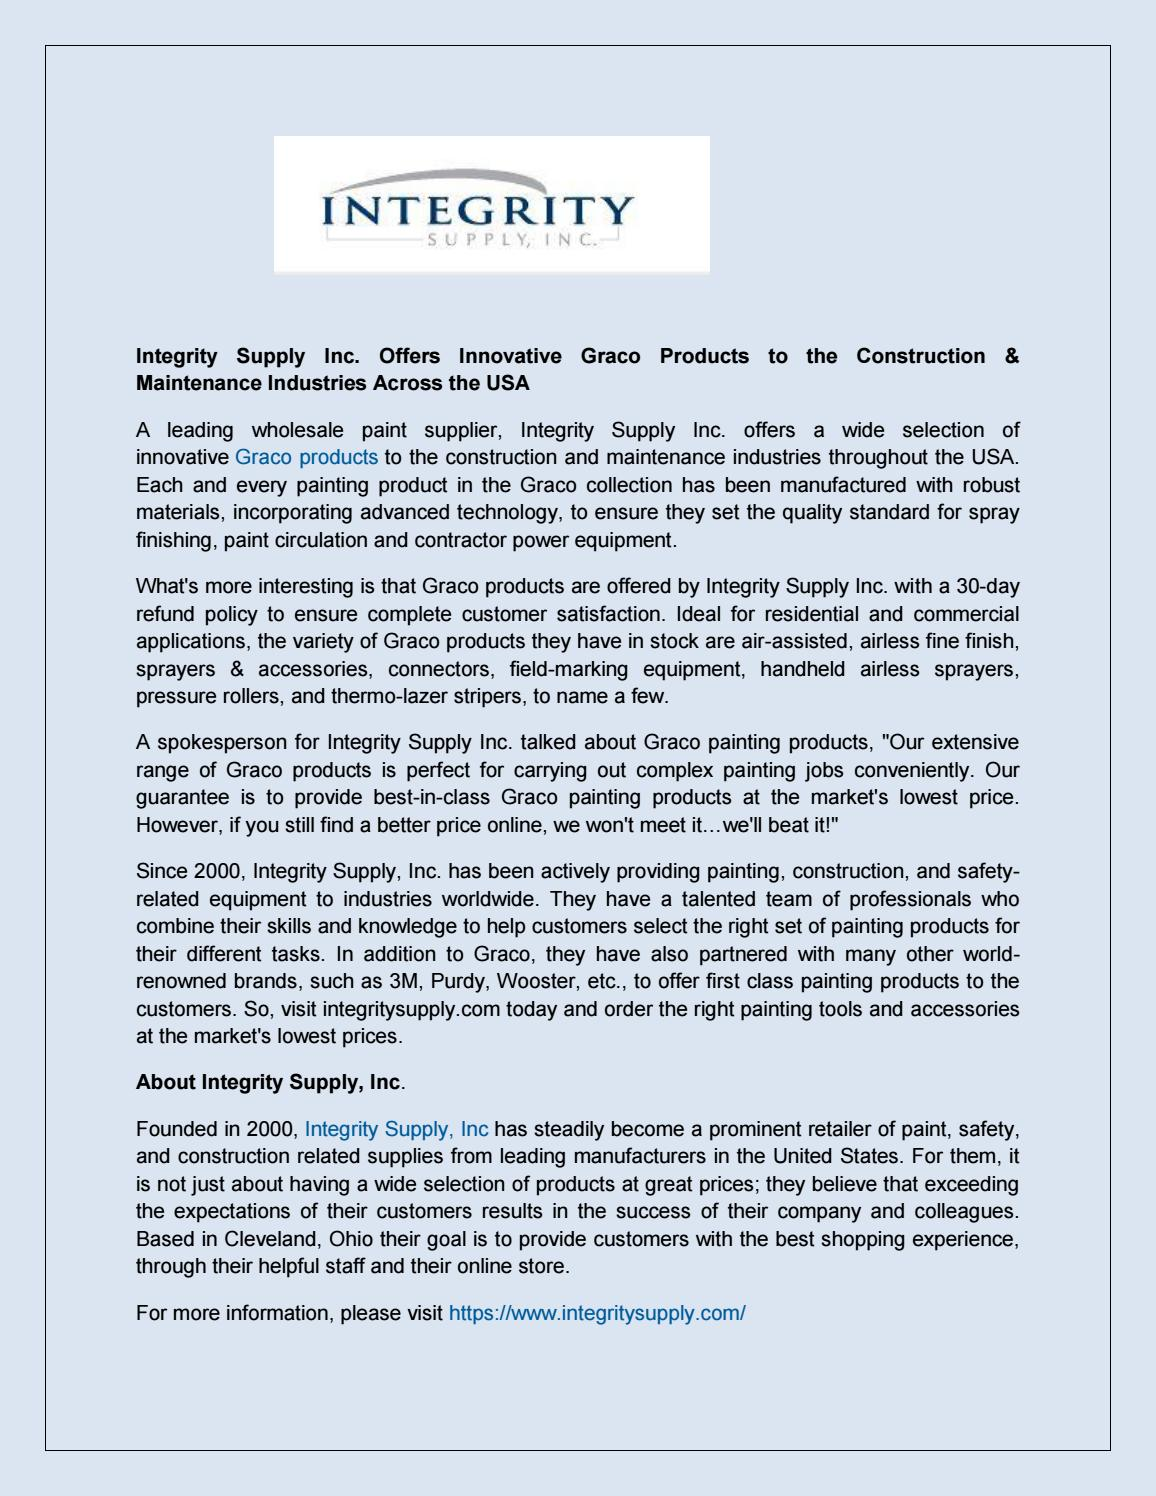 Integrity Supply Inc Offers Innovative Graco Products To The Roller Set Beat Lama Construction Maintenance Industries A By Integritysupply Issuu